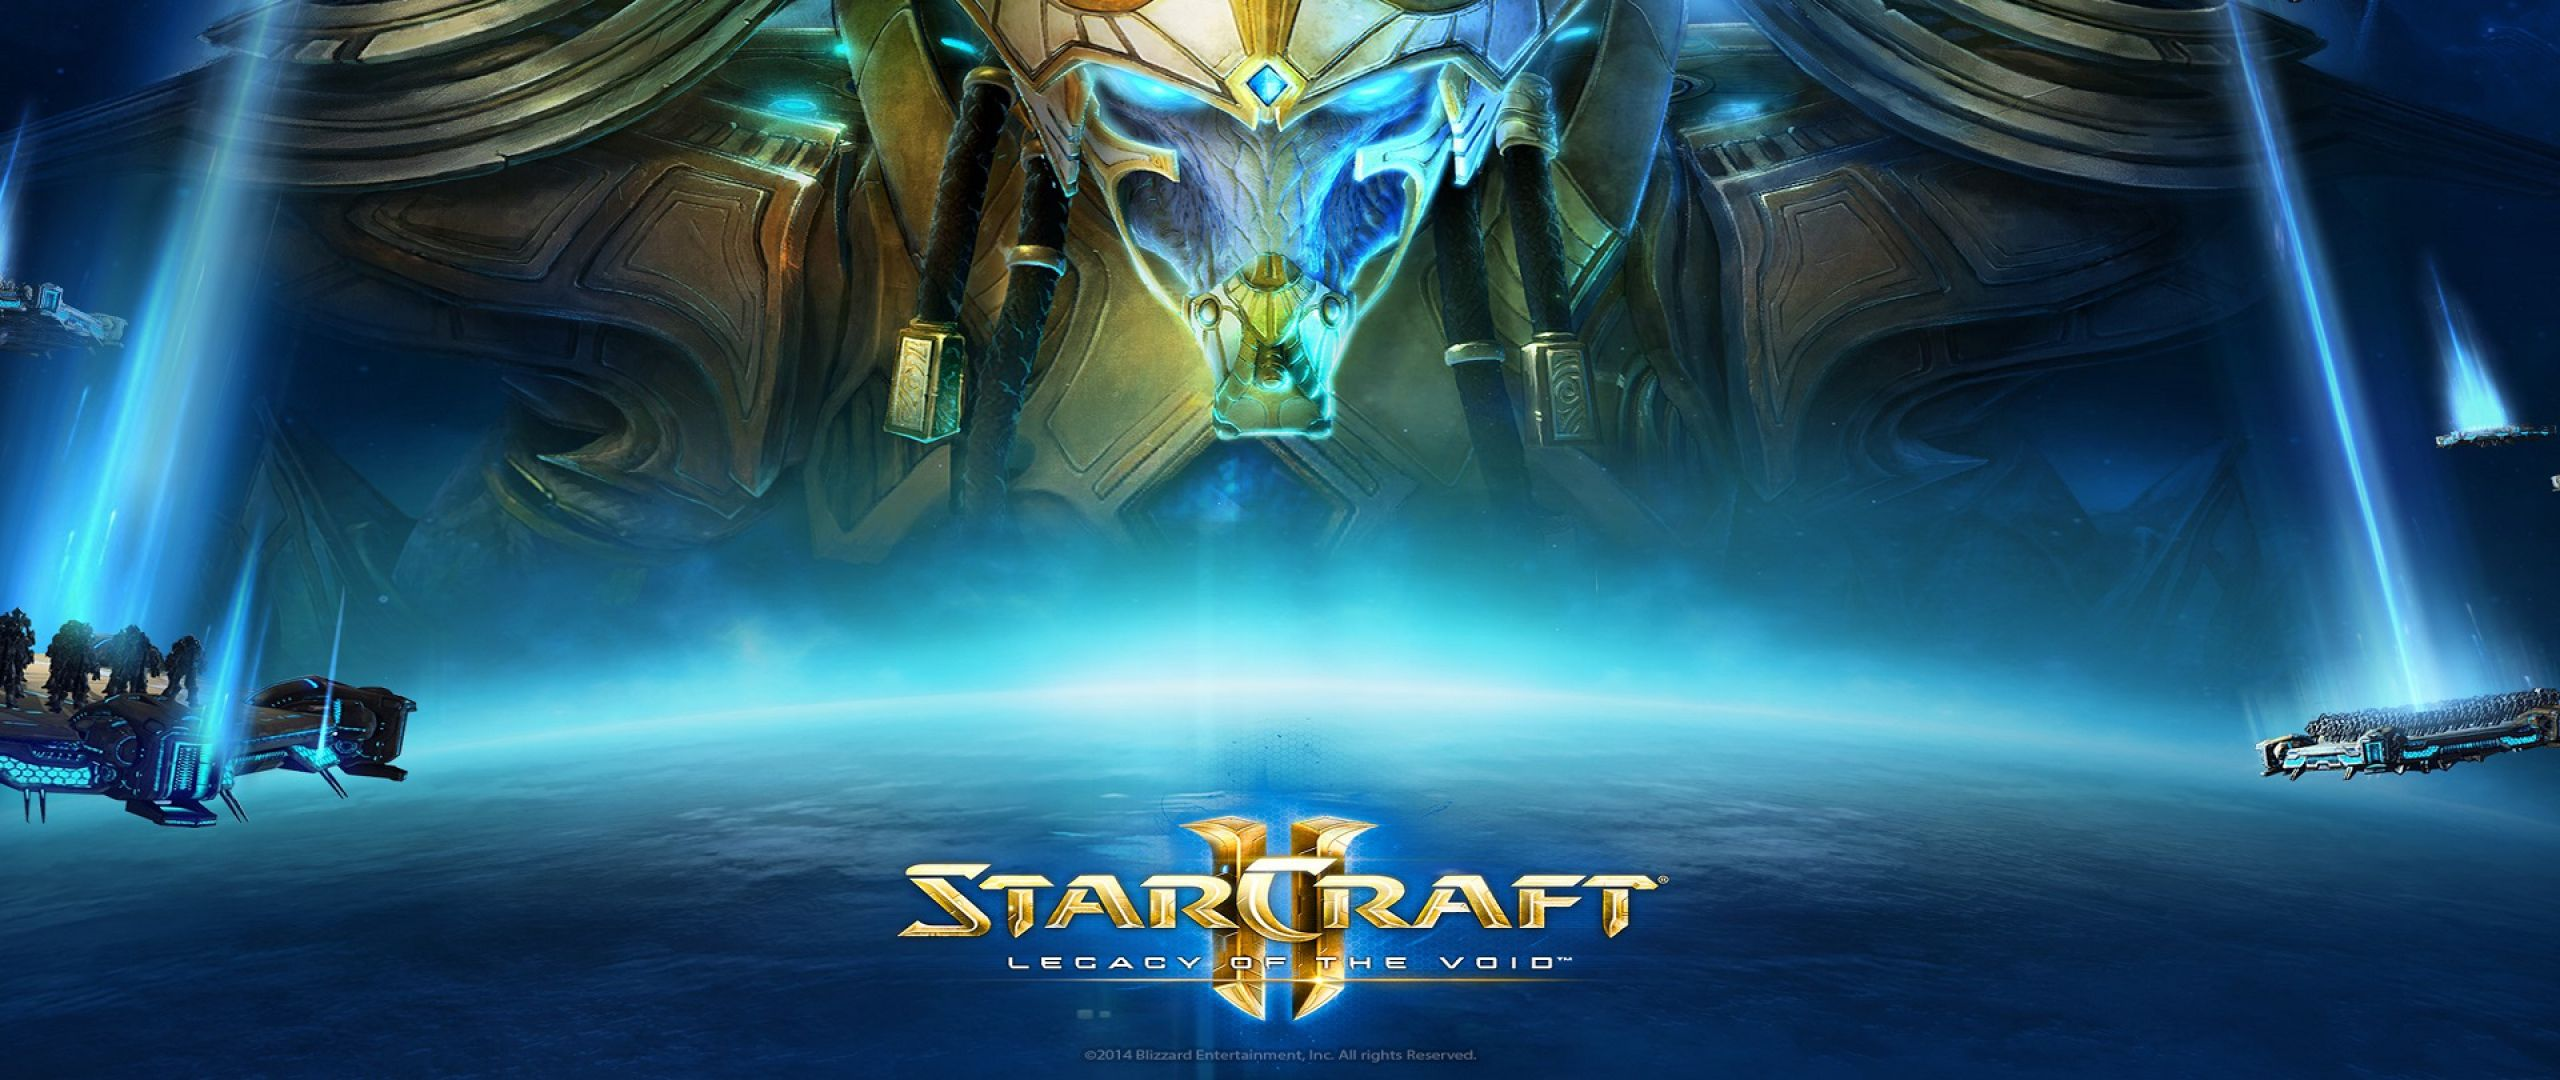 Hyperion StarCraft II Wallpaper Game Wallpapers HD Wallpapers - Minecraft hyperion spielen